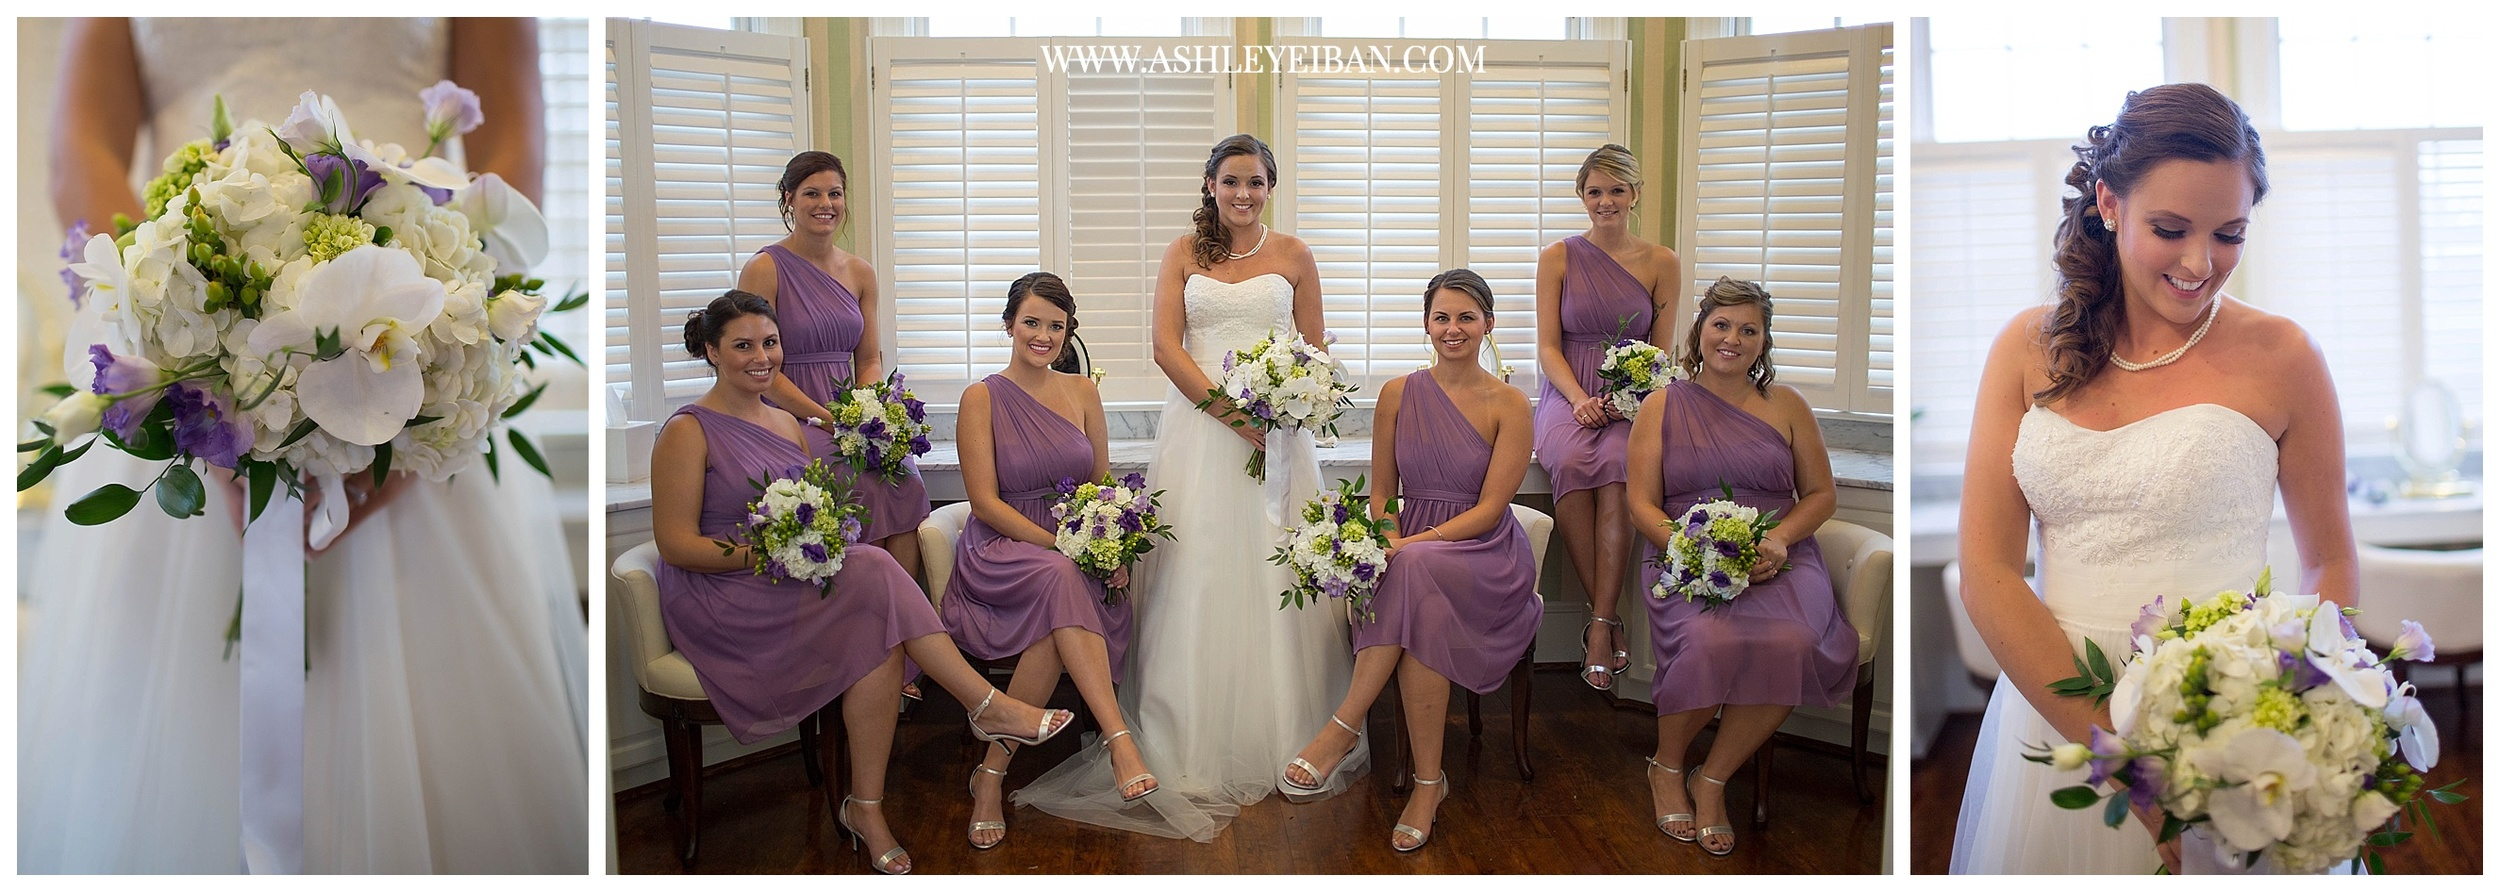 Lynchburg, Virginia Wedding Photographer || West Manor Estate Wedding || Ashley Eiban Photography || www.ashleyeiban.com